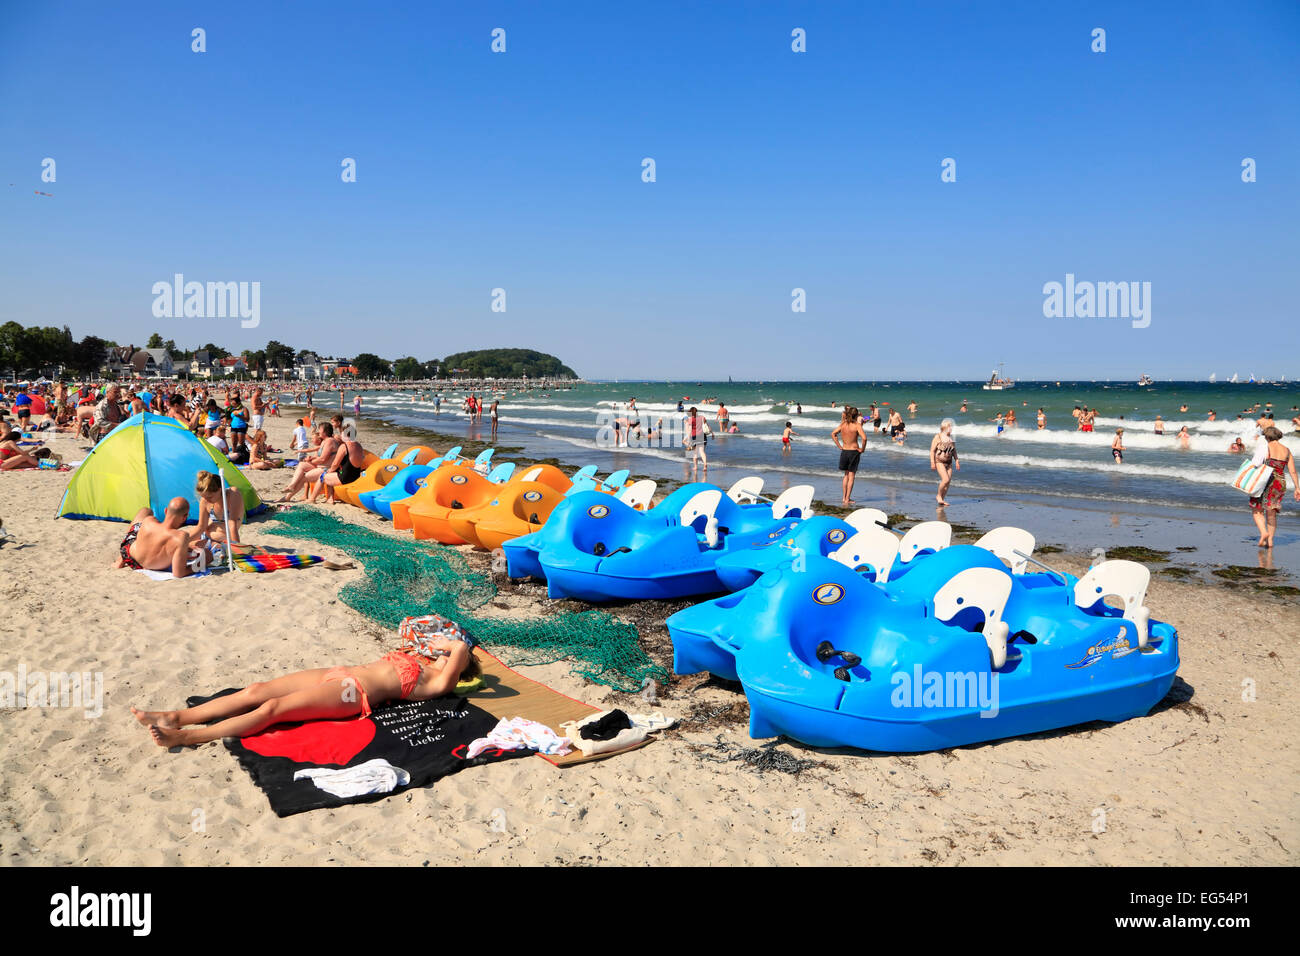 Pedal boats to rent at Travemuende beach, Baltic sea coast, Schleswig-Holstein, Germany,  Europe - Stock Image